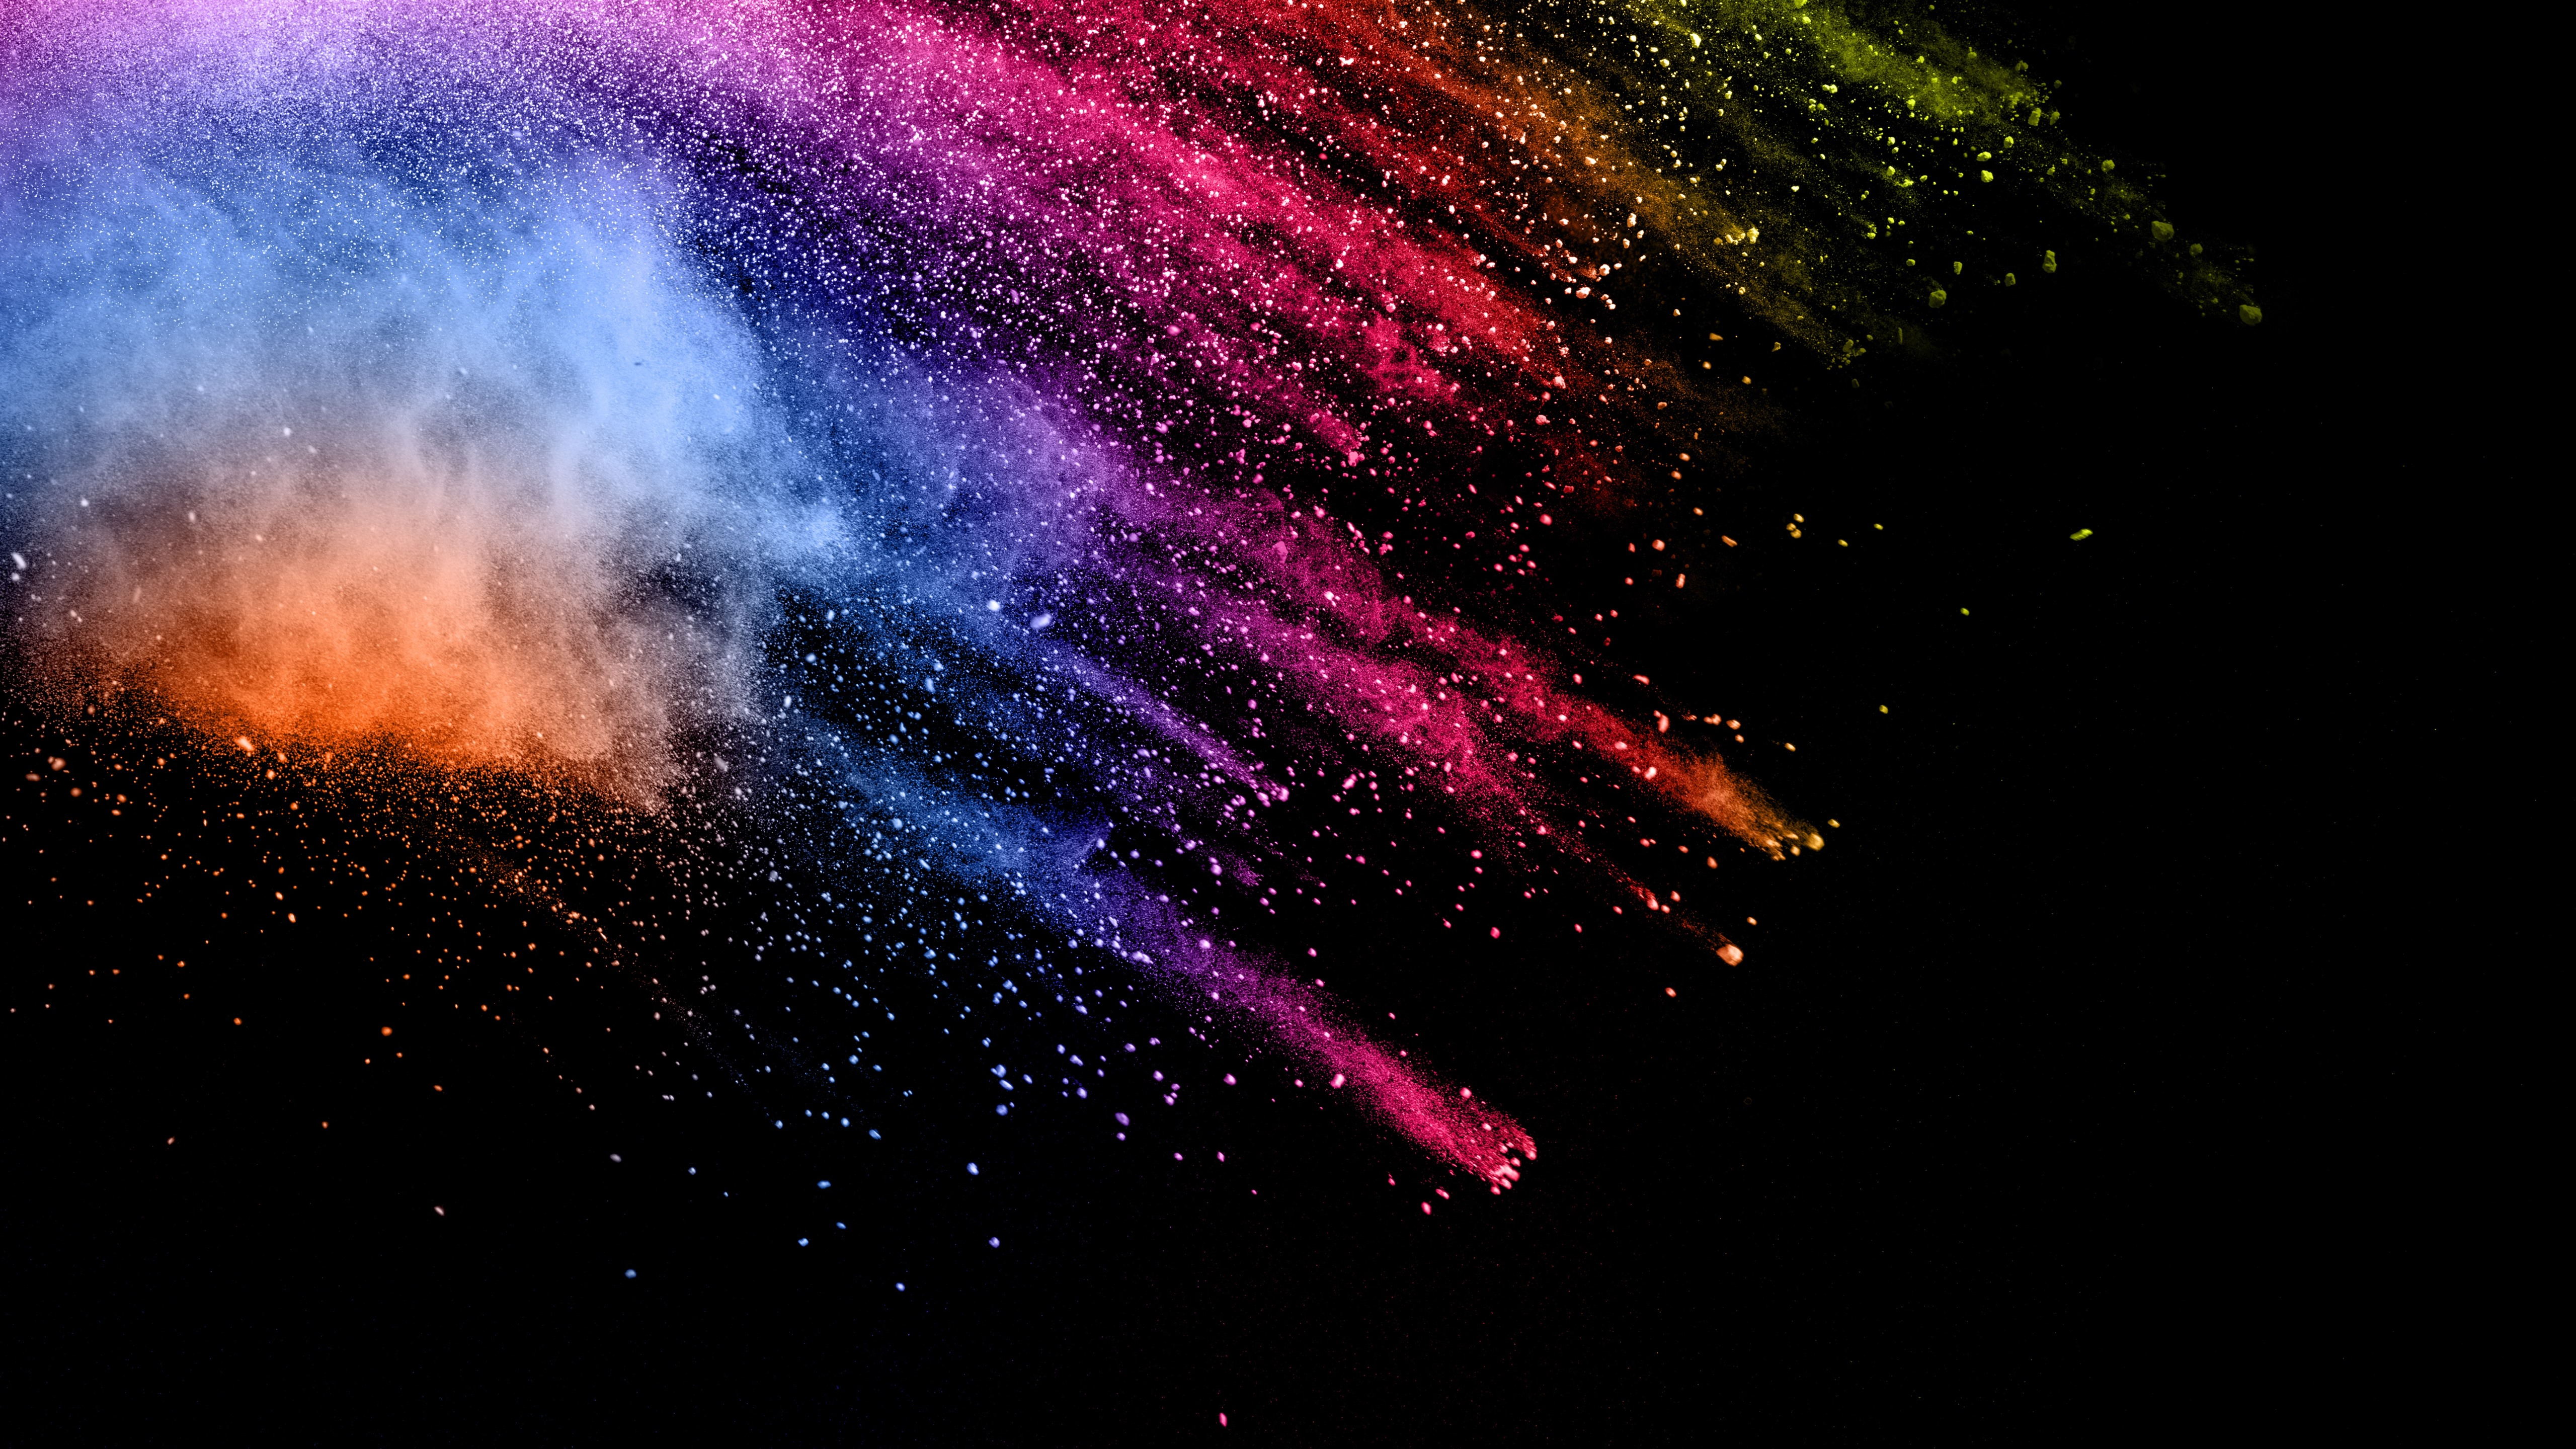 Wallpaper Paint Splash Colorful Abstract Picture 5120x2880